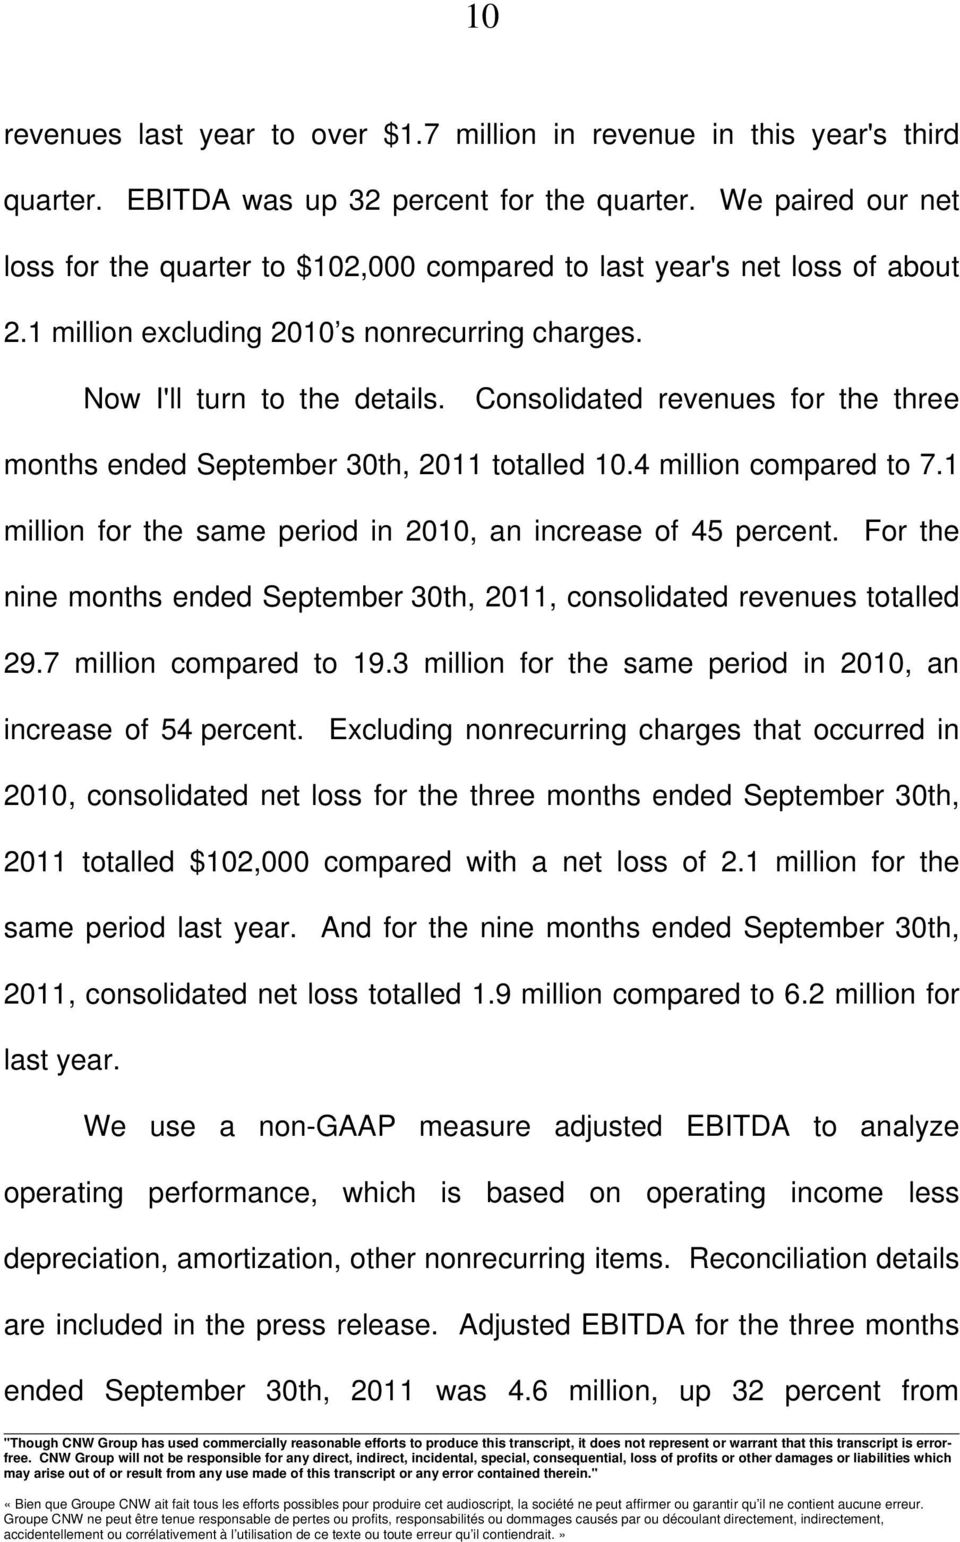 Consolidated revenues for the three months ended September 30th, 2011 totalled 10.4 million compared to 7.1 million for the same period in 2010, an increase of 45 percent.